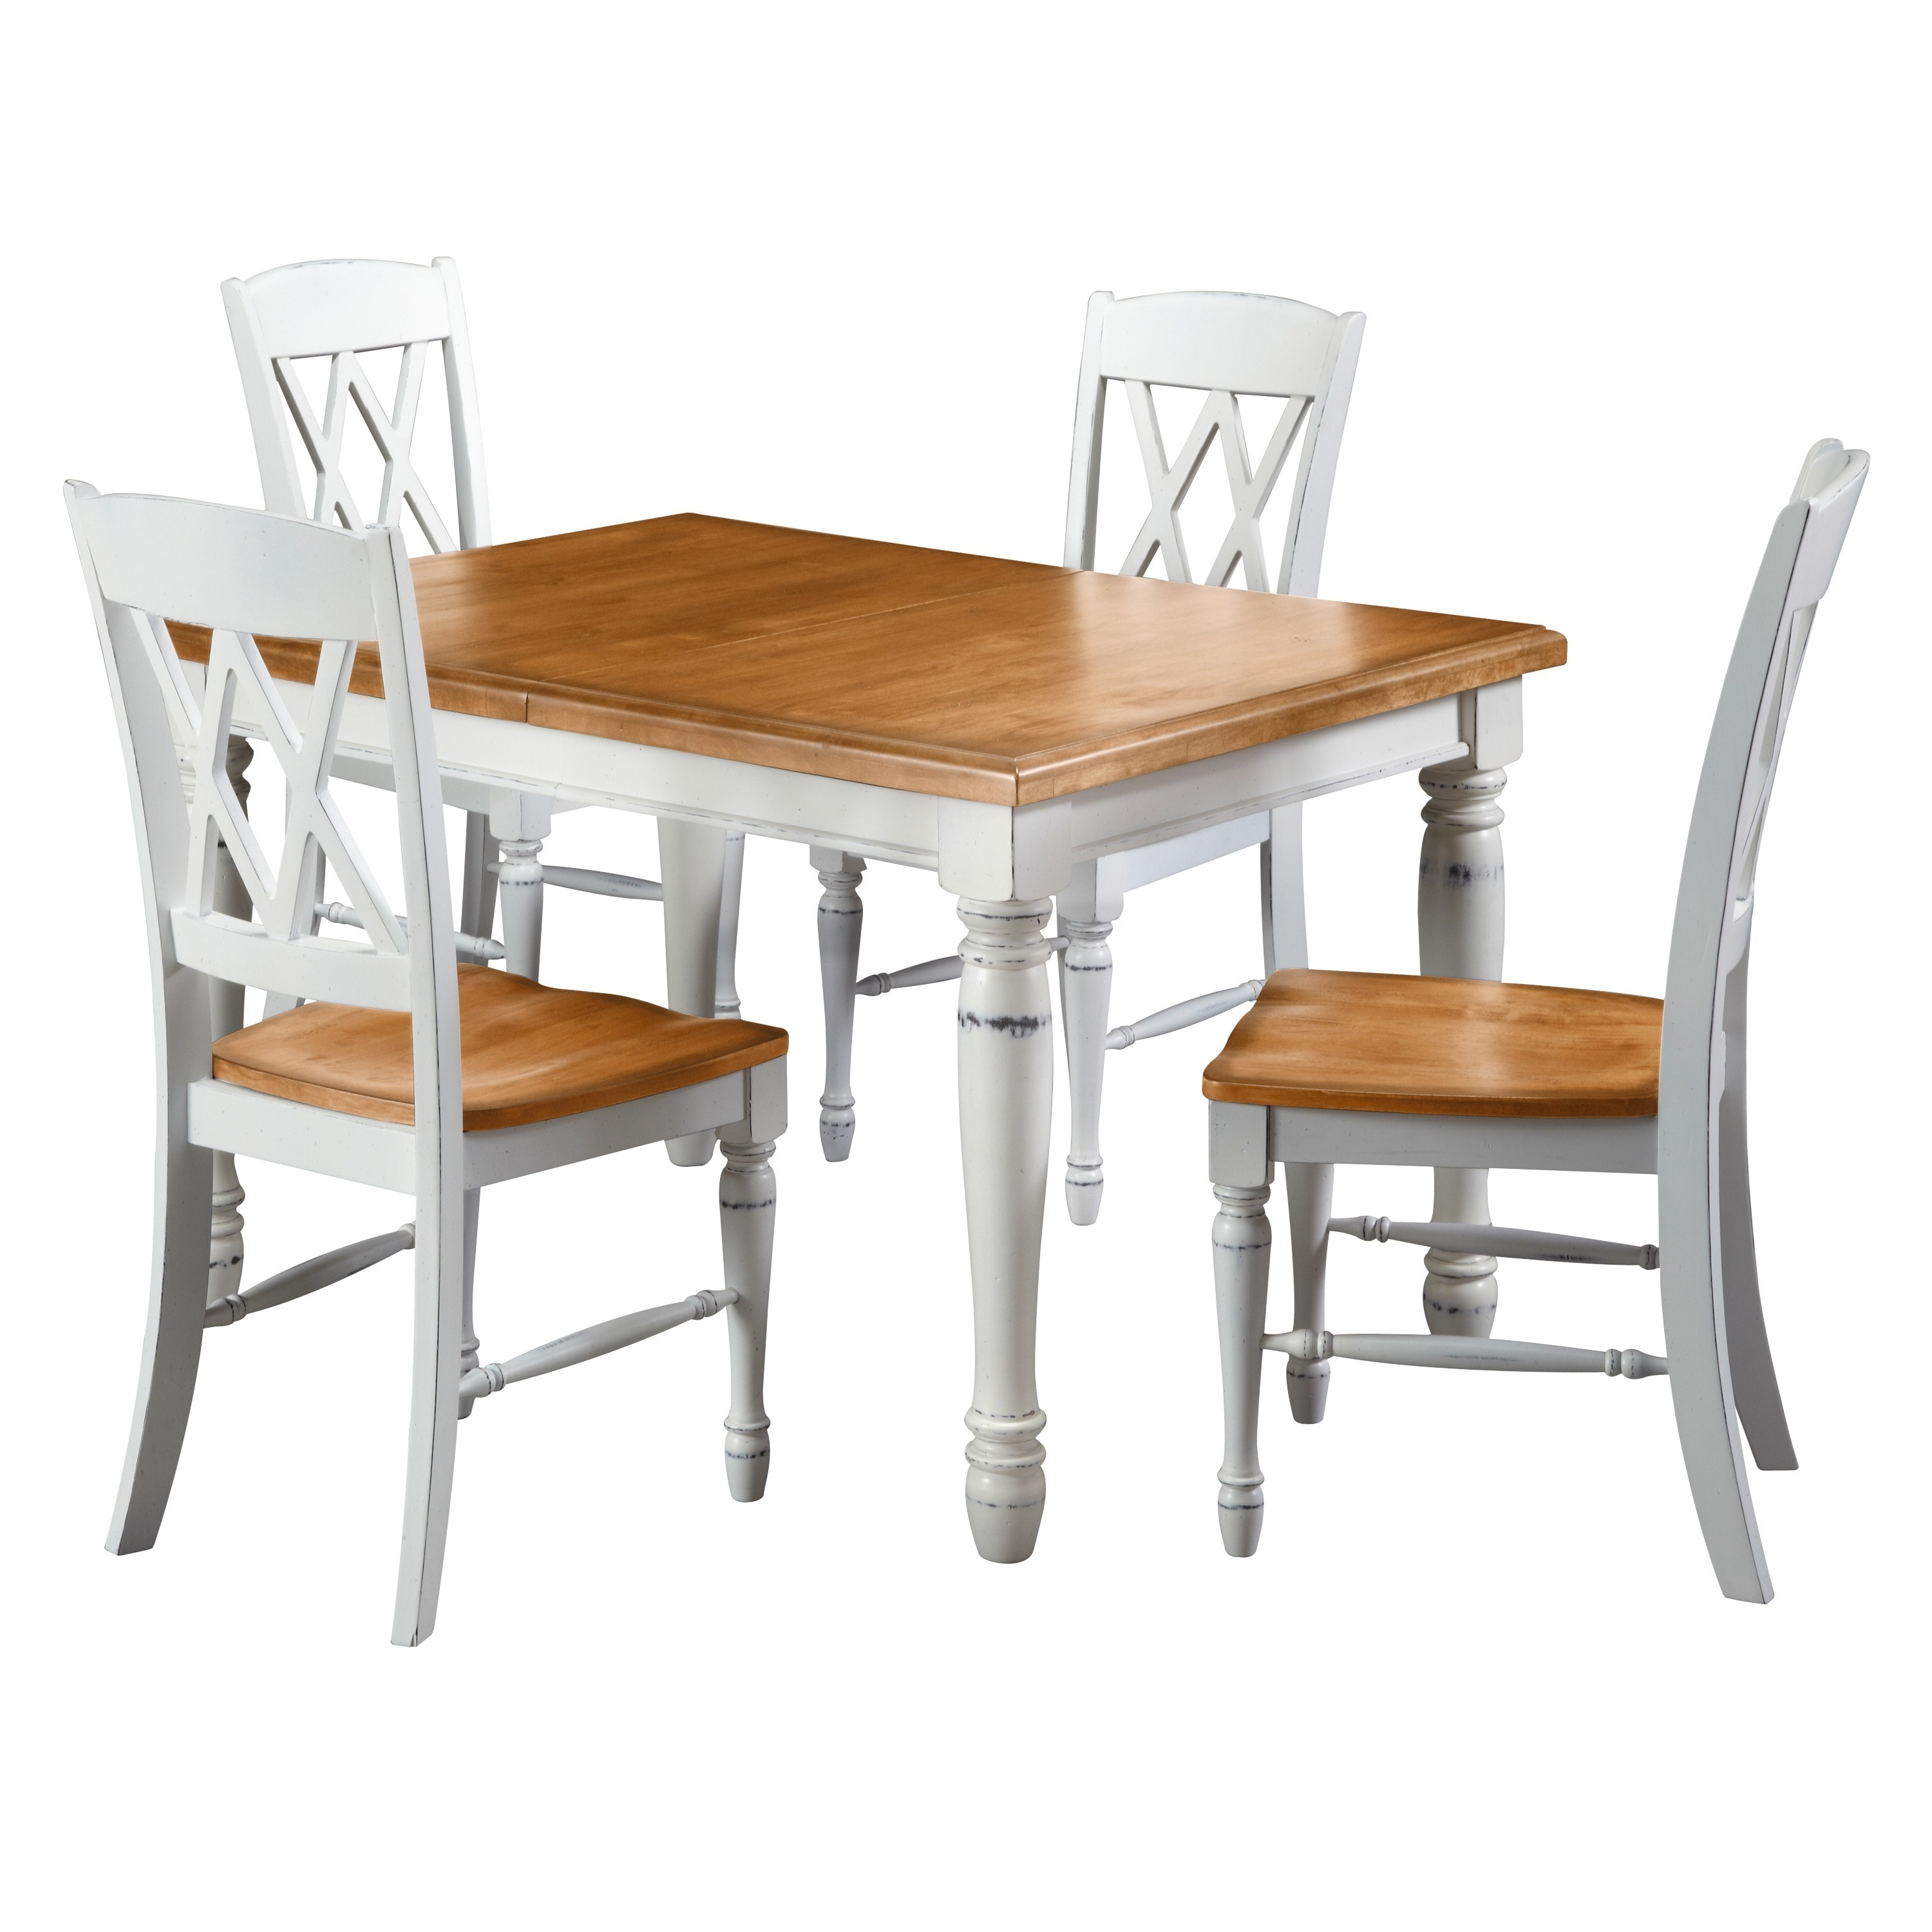 monarch double x back dining chairs chair yoga certification nyc buy kitchen and room sets online at overstock